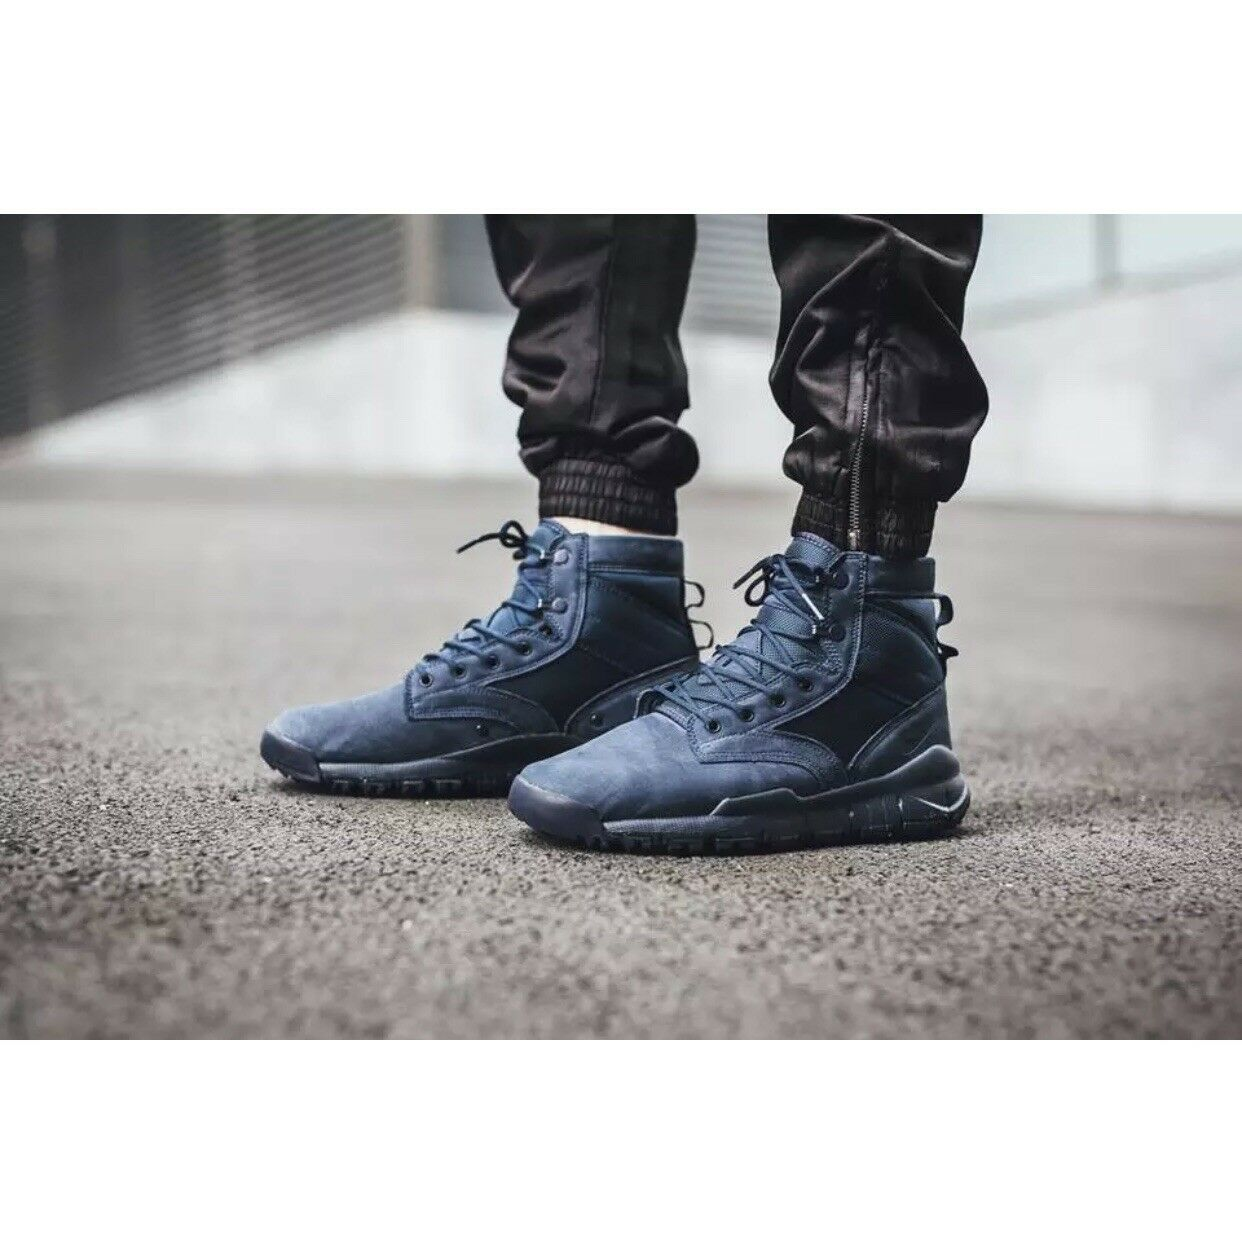 New Nike SFB Trainer Sz 8.5 bluee Mens Training shoes 862507-400 Leather 6  Boot